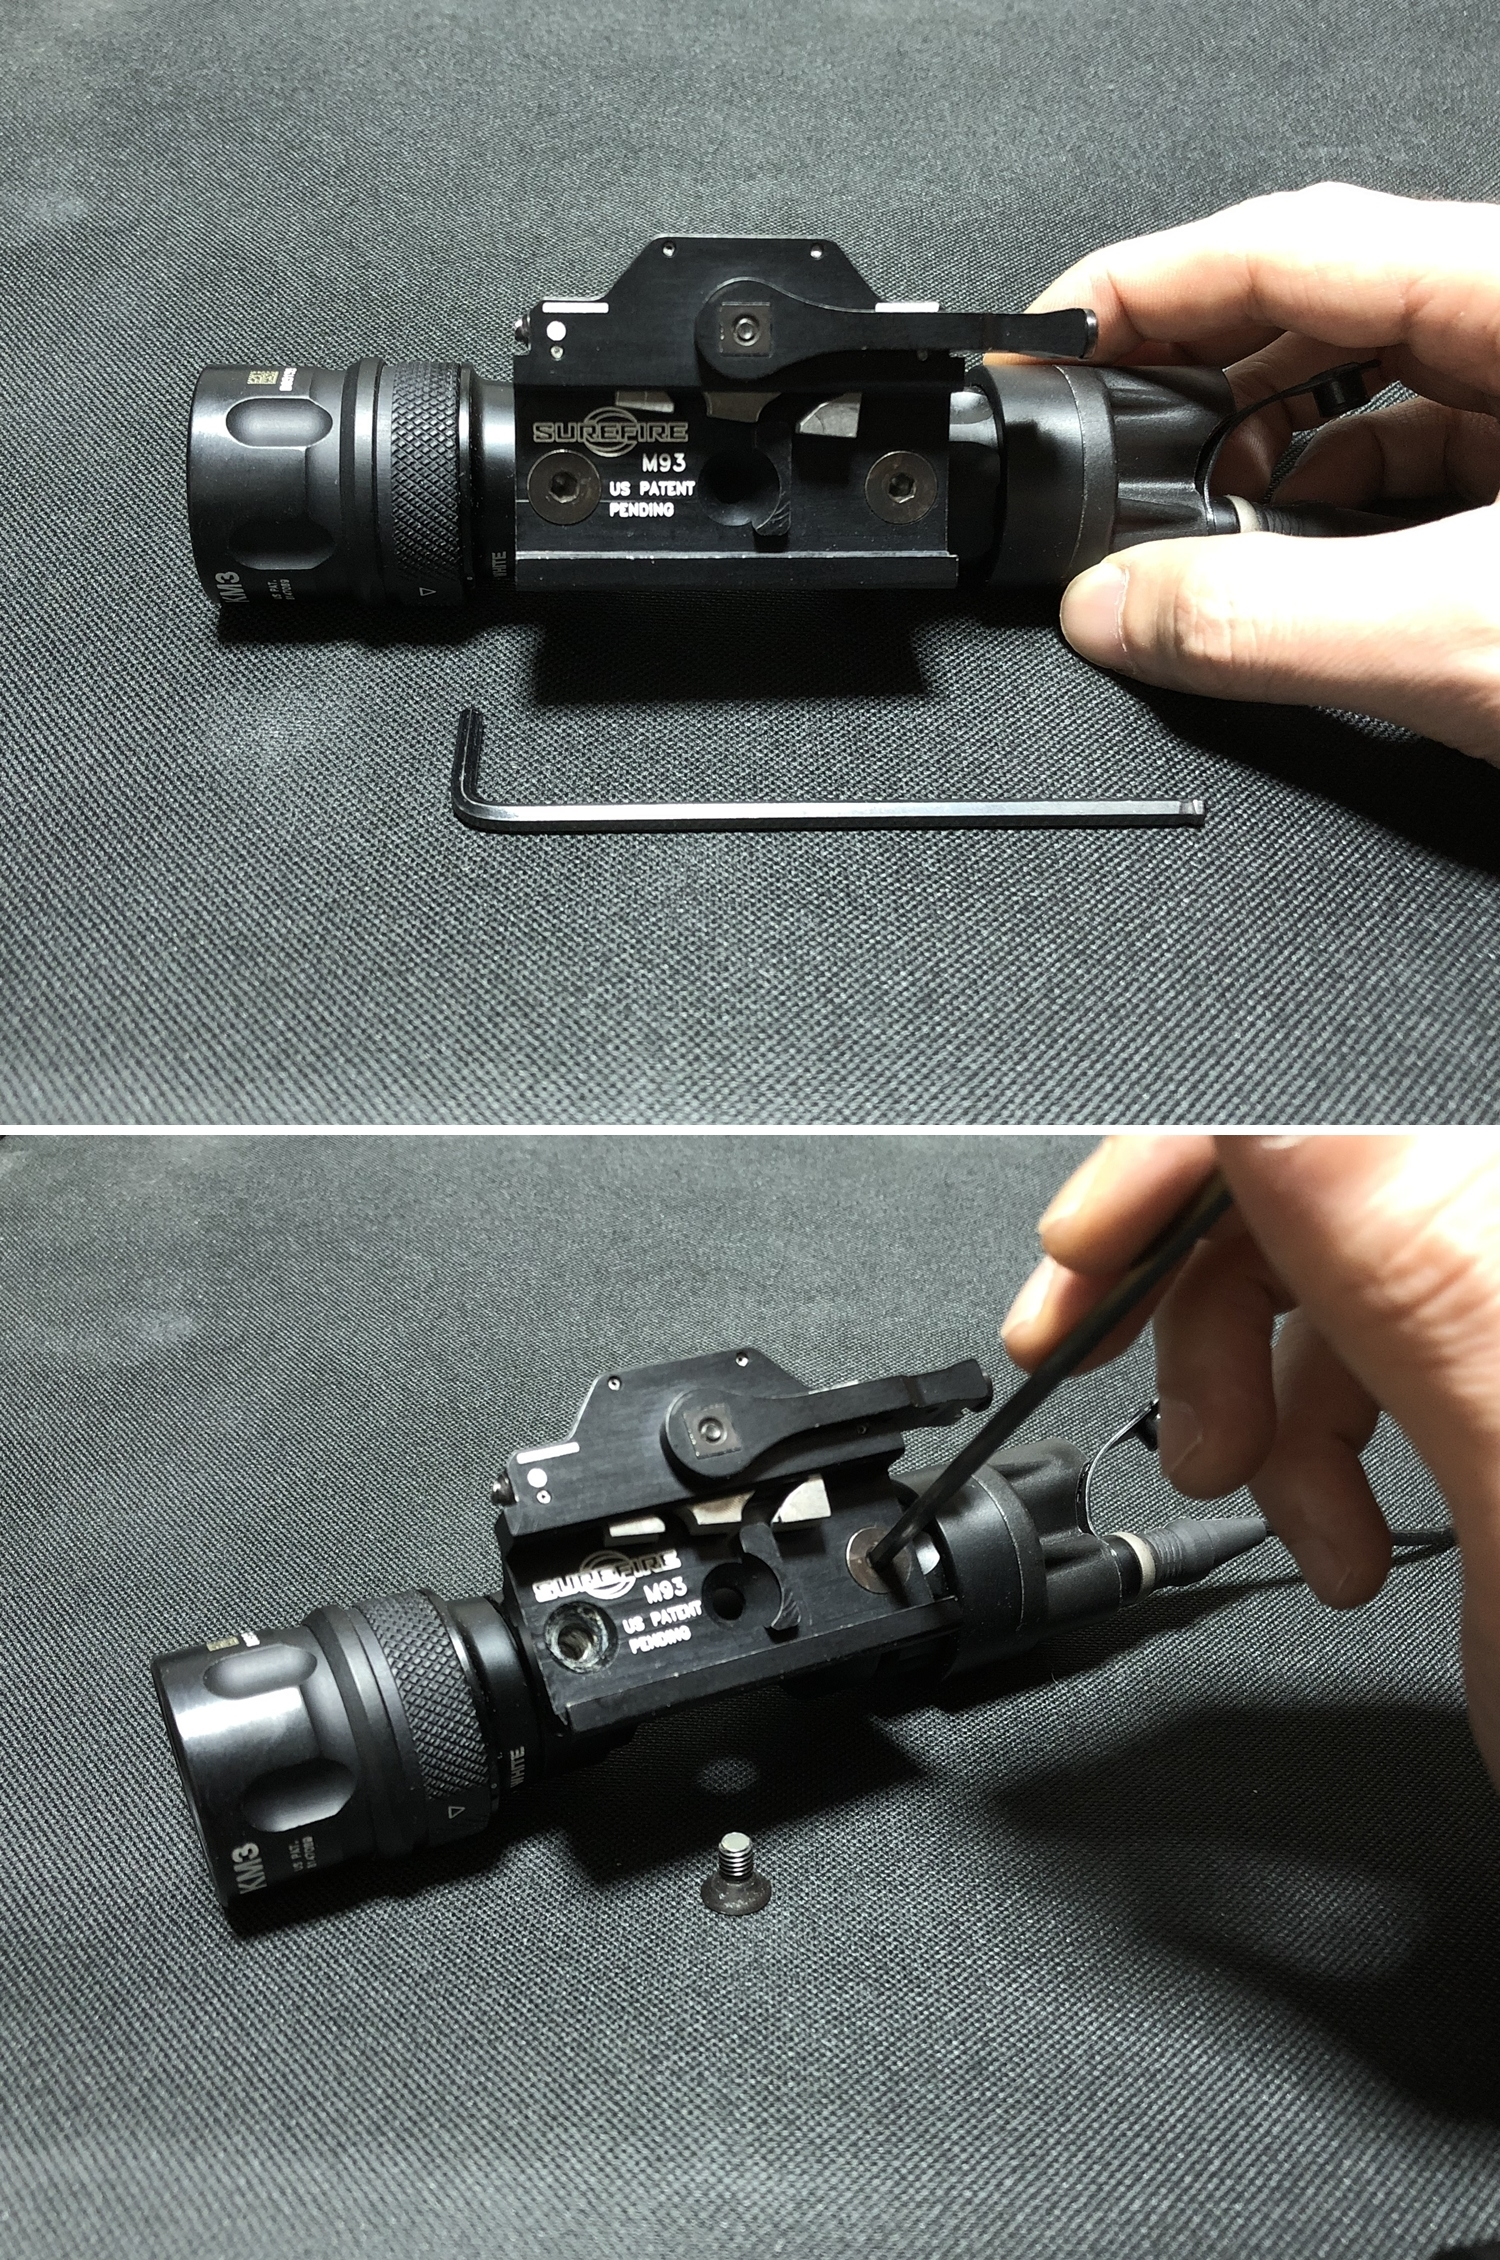 11 実物 ARISAKA DEFENSE LLC OFFSET M620 ADAPTER & SCOUT MOUNT M-LOK & SUREFIRE M952V 実物 アリサカ